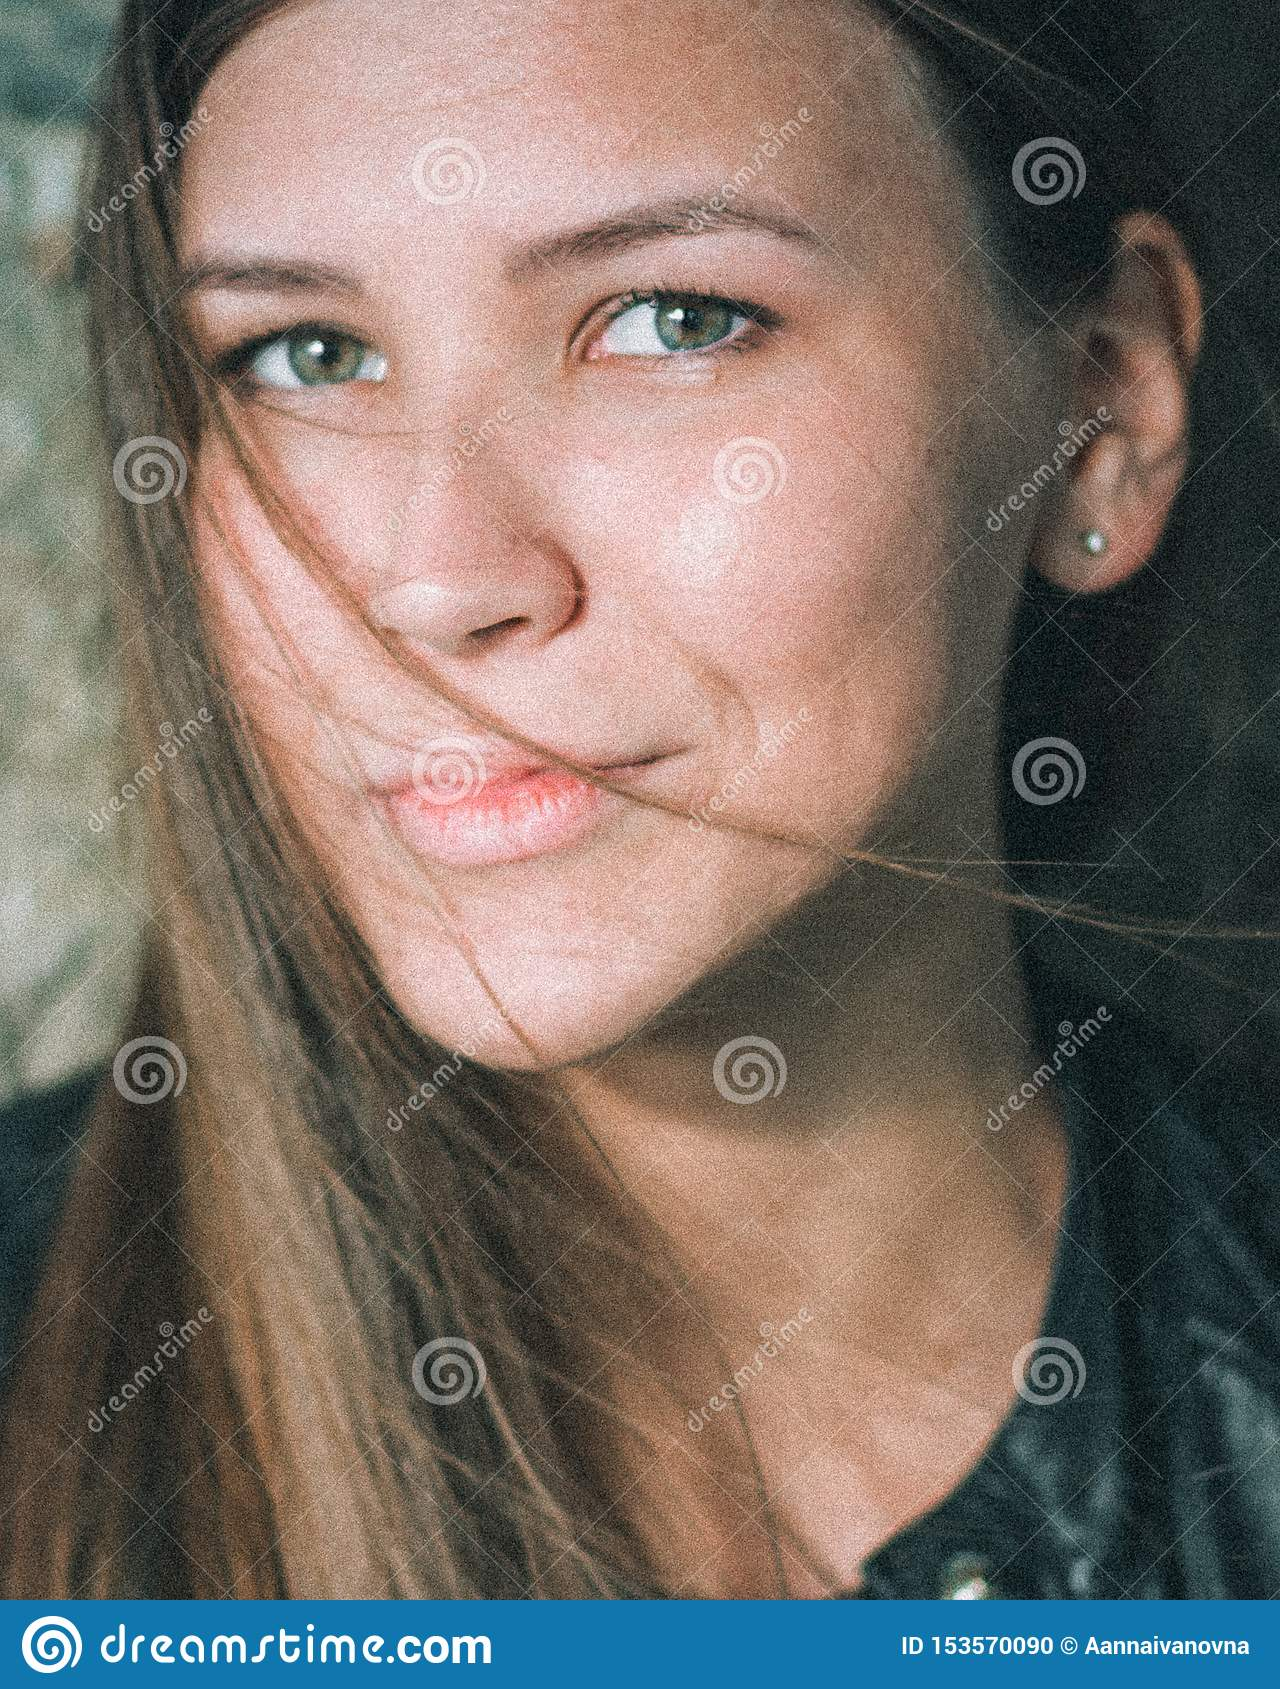 Close-up portrait of a beautiful caucasian girl with long blond flowing hair . A young woman looks straight into the